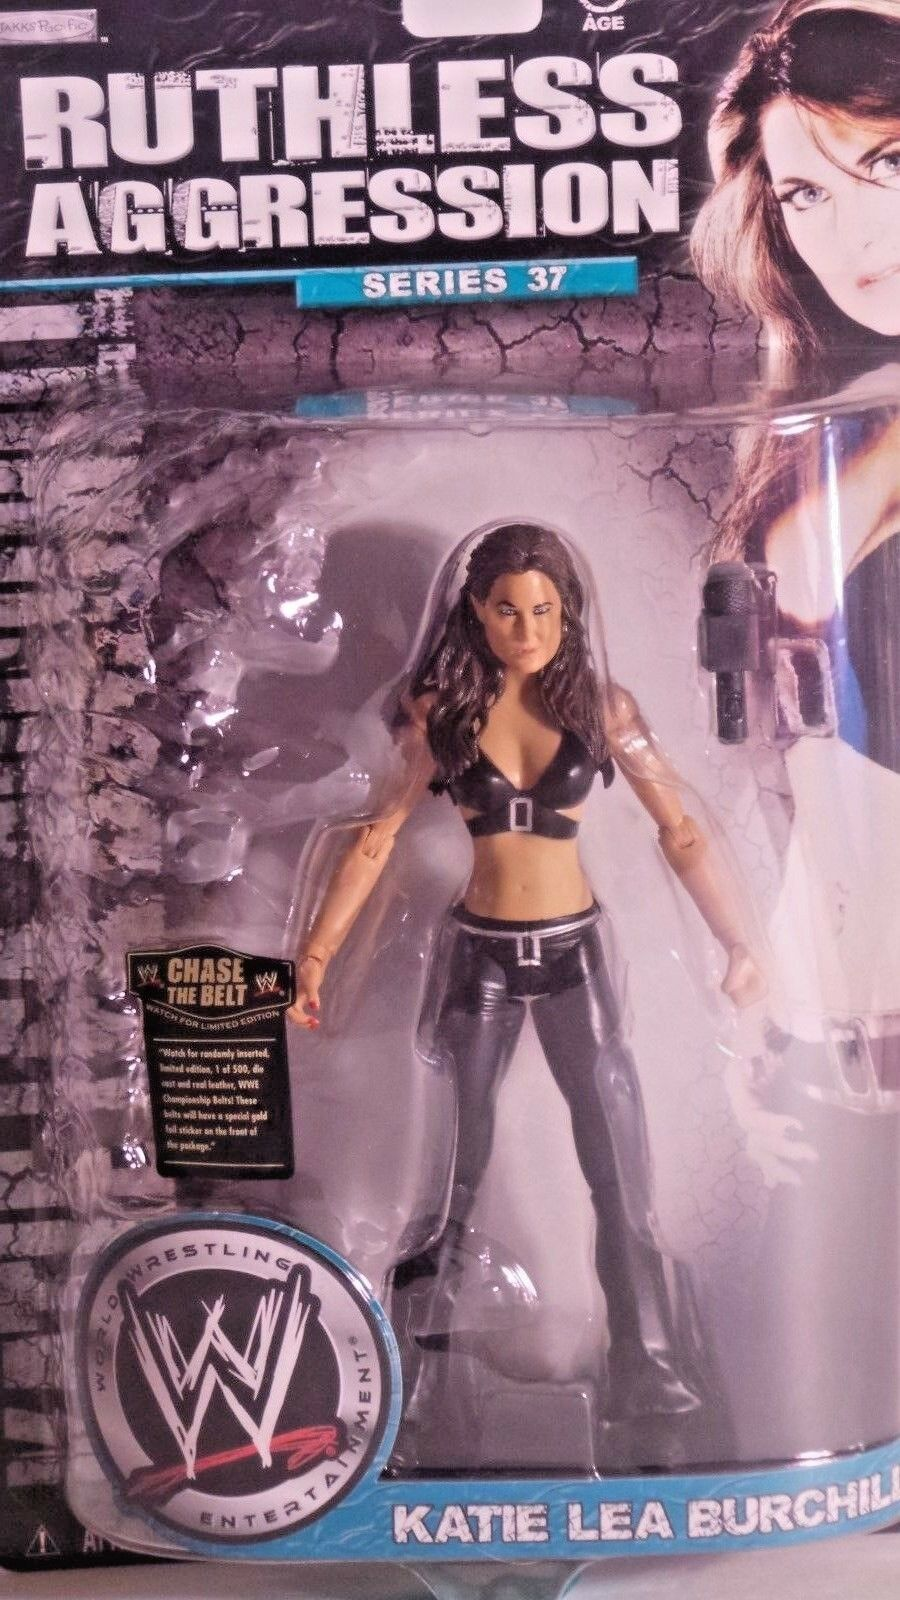 WWE KATIE LEA BURCHHILL RUTHLESS AGGRESSION ACTION FIGURE 017